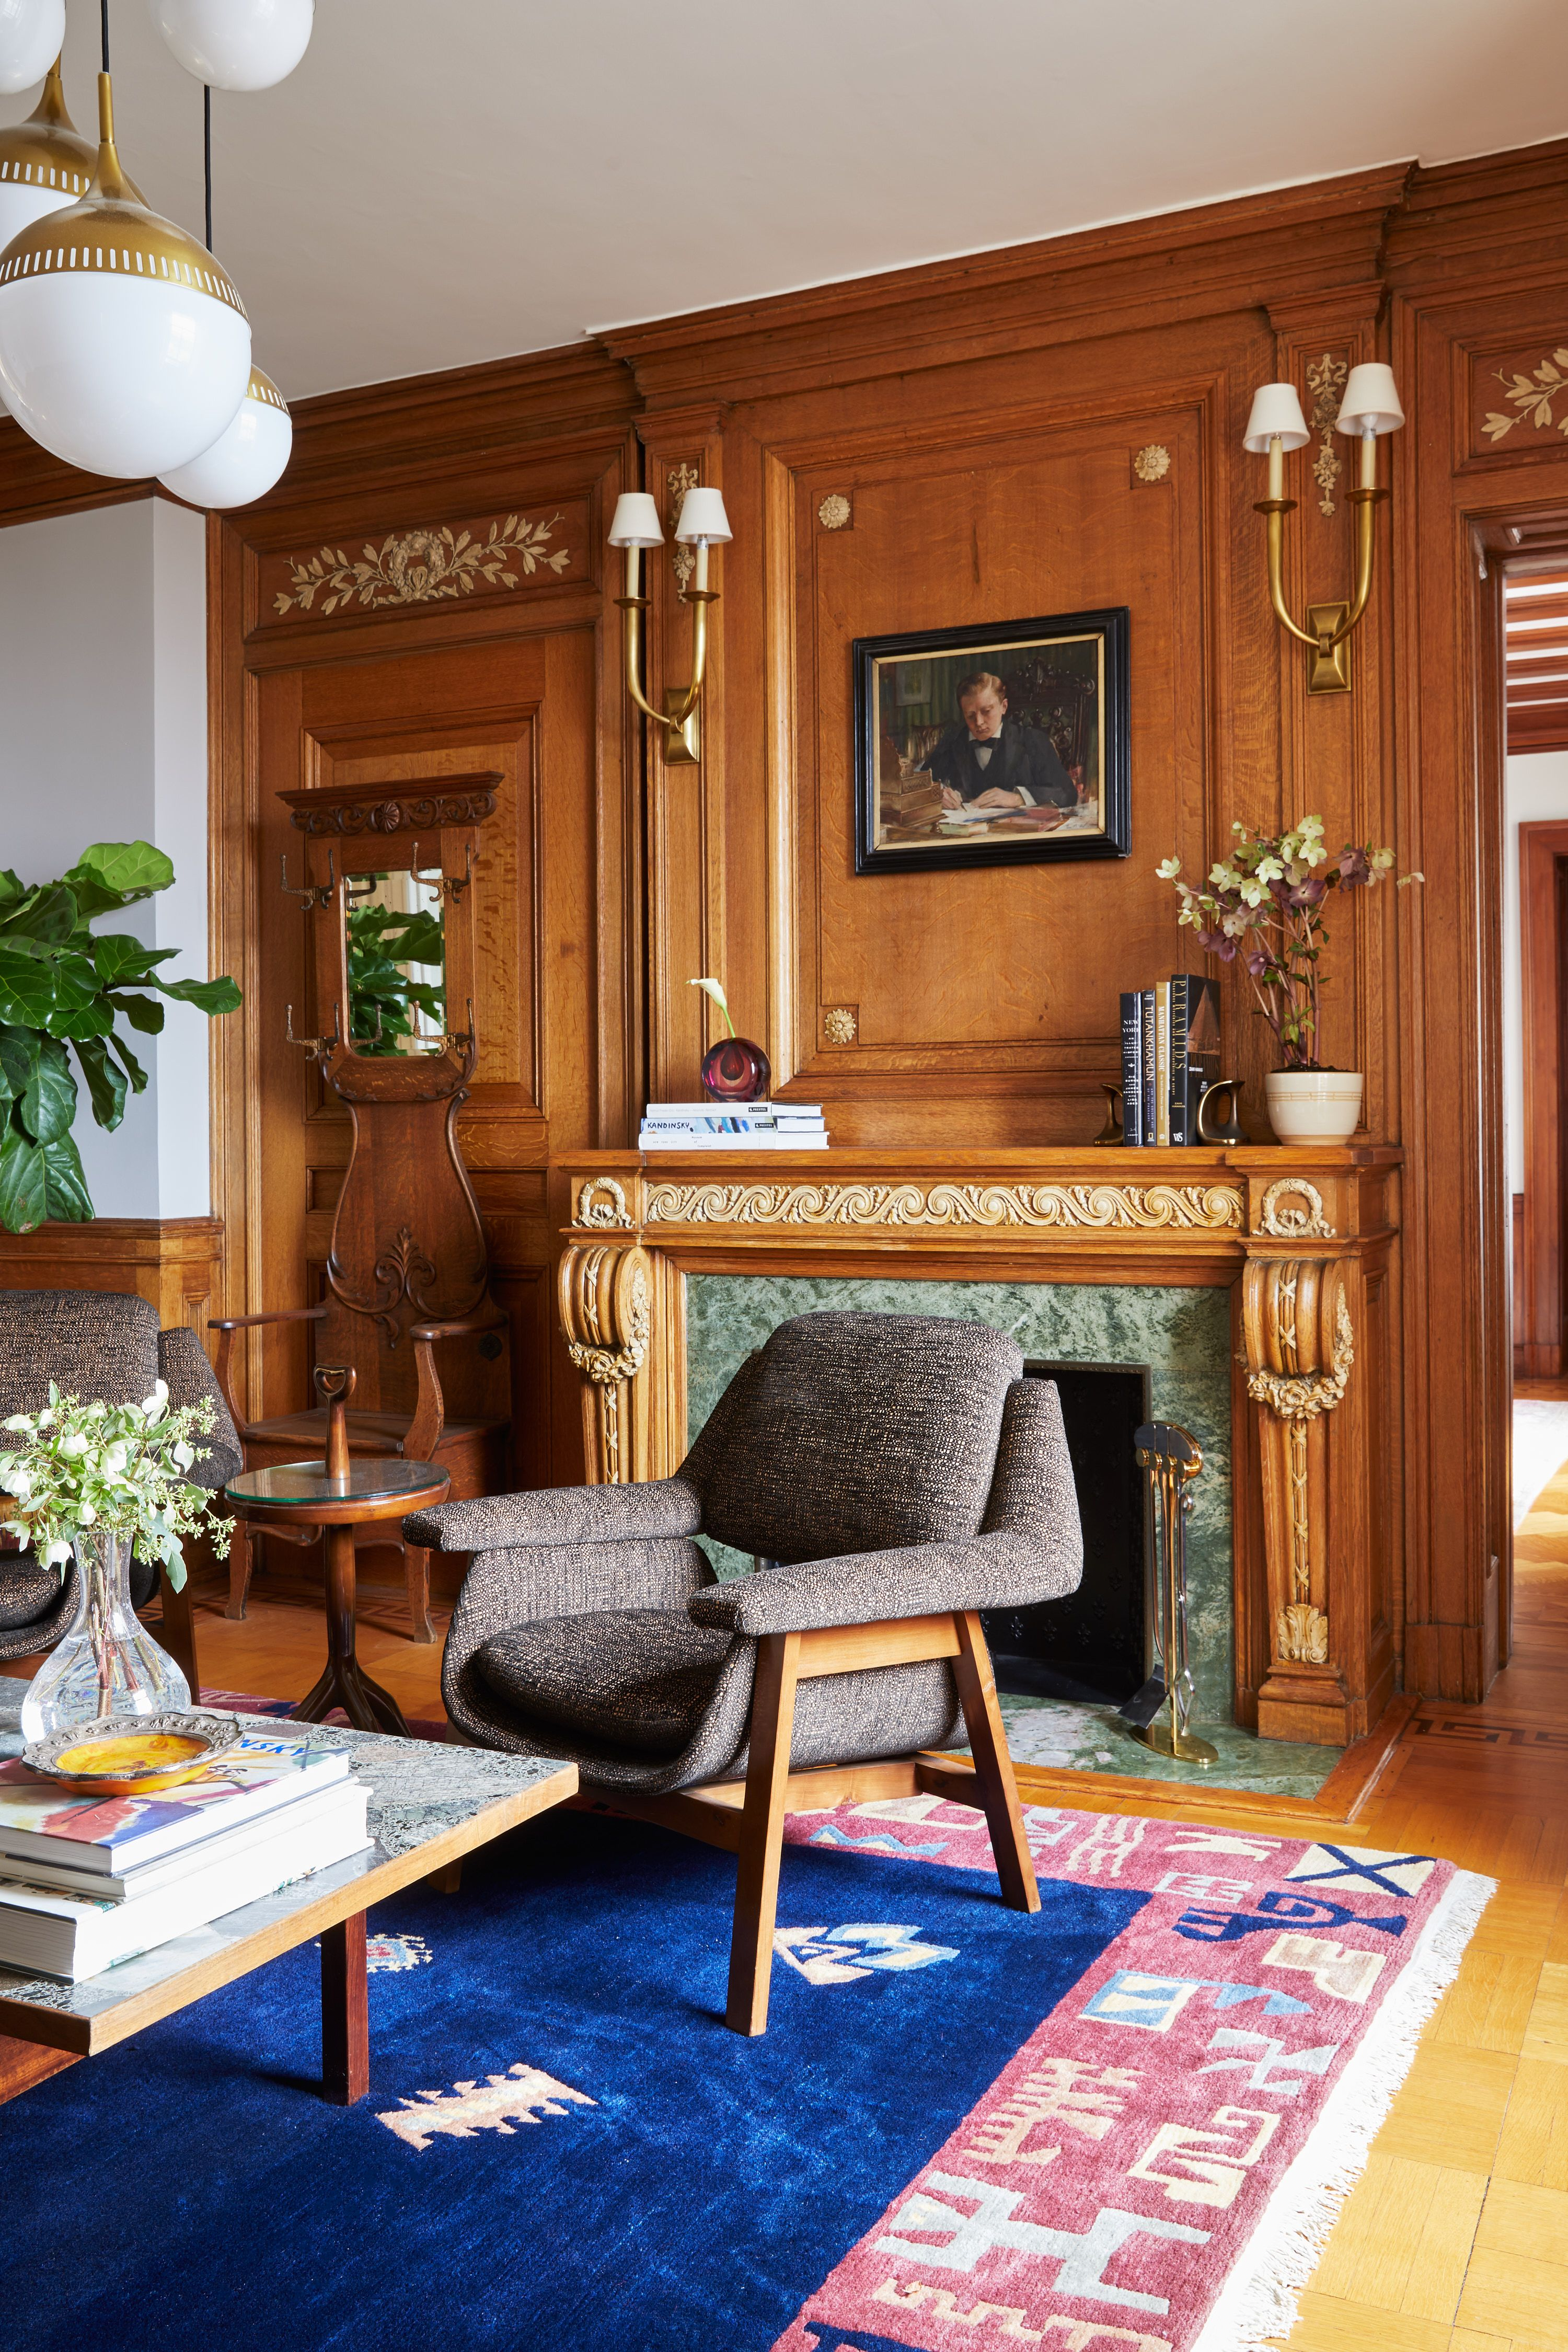 This 100-Year-Old Apartment Is Anything But Stuffy